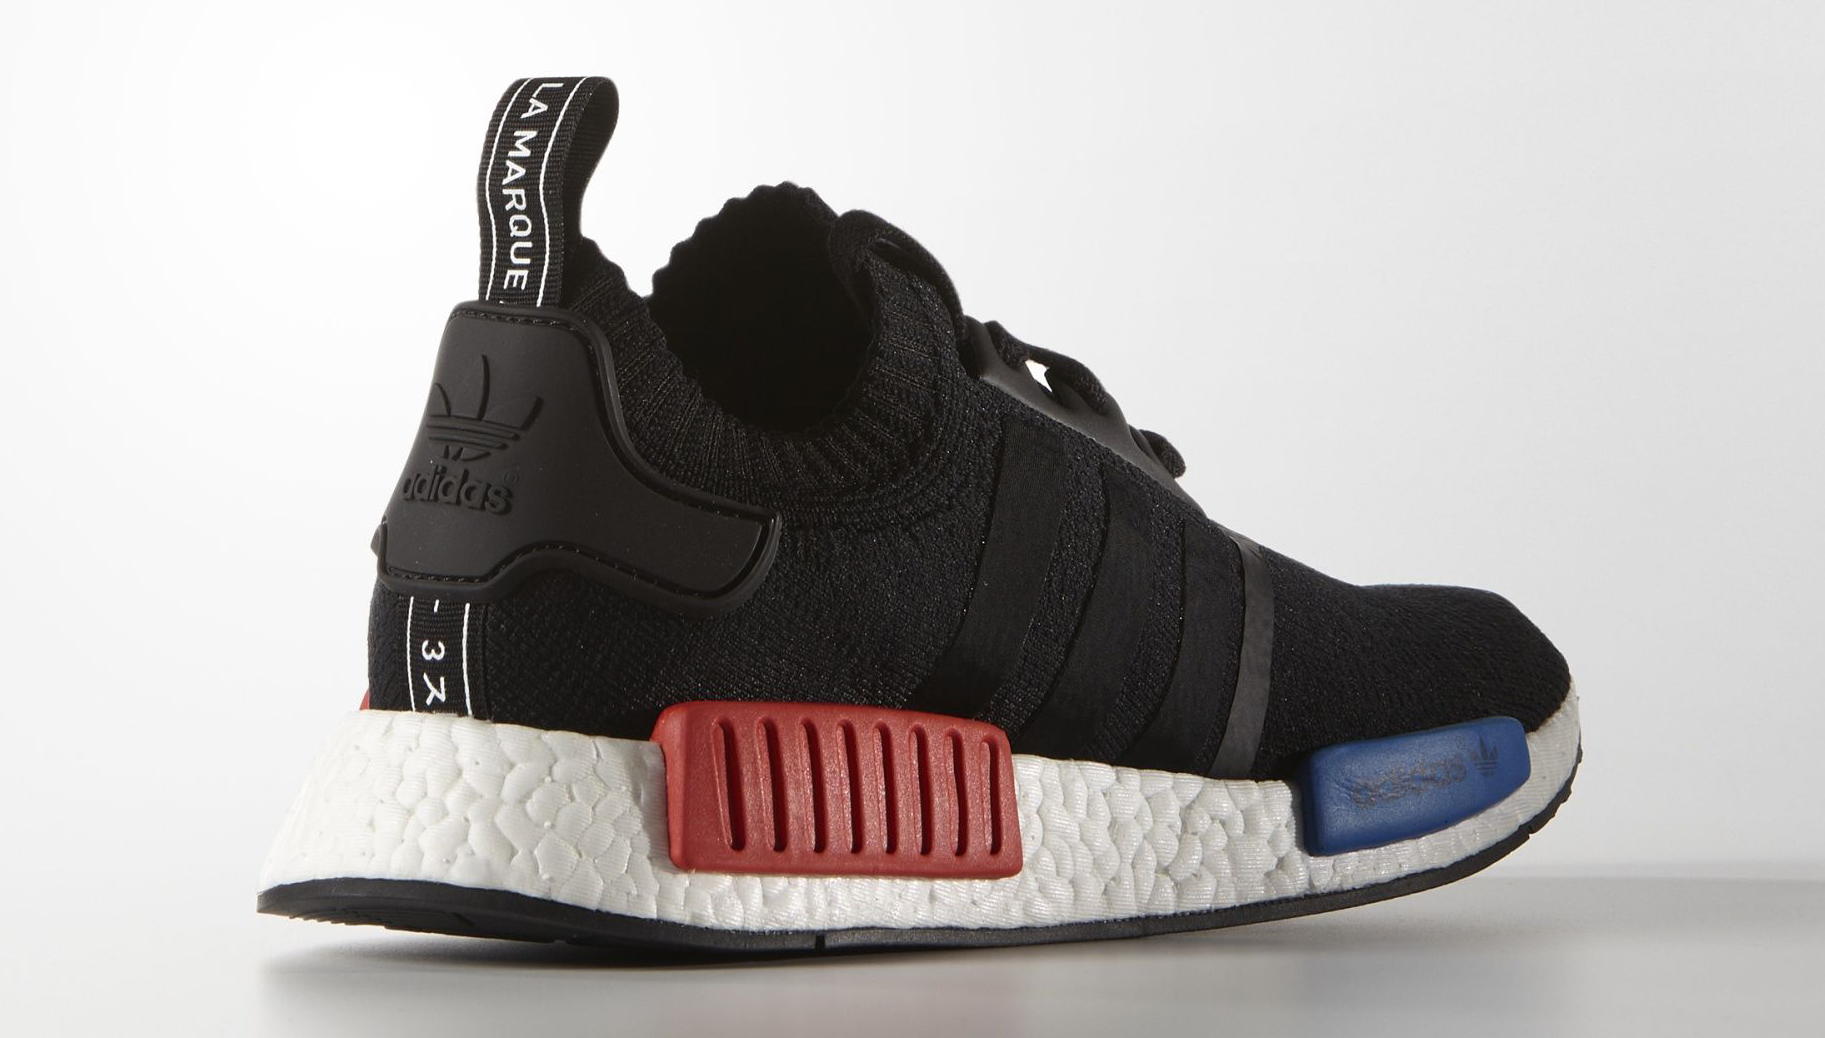 Cheap Adidas nmd R2 black/red us9/10 Men's Shoes Australia